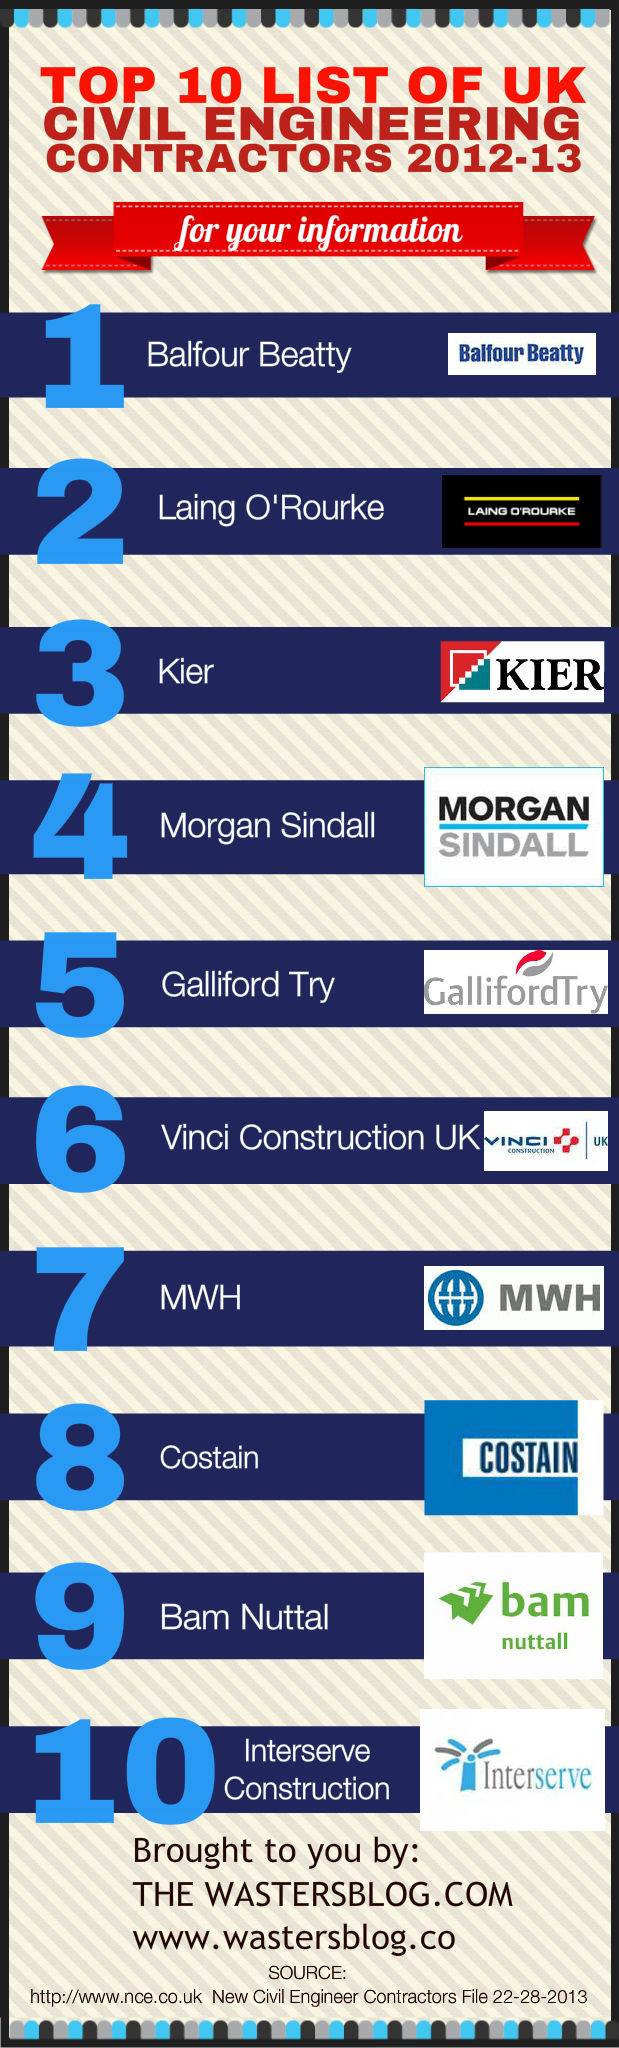 List of the Top UK Civil Engineering Contractors 2012 - The Wasters Blog